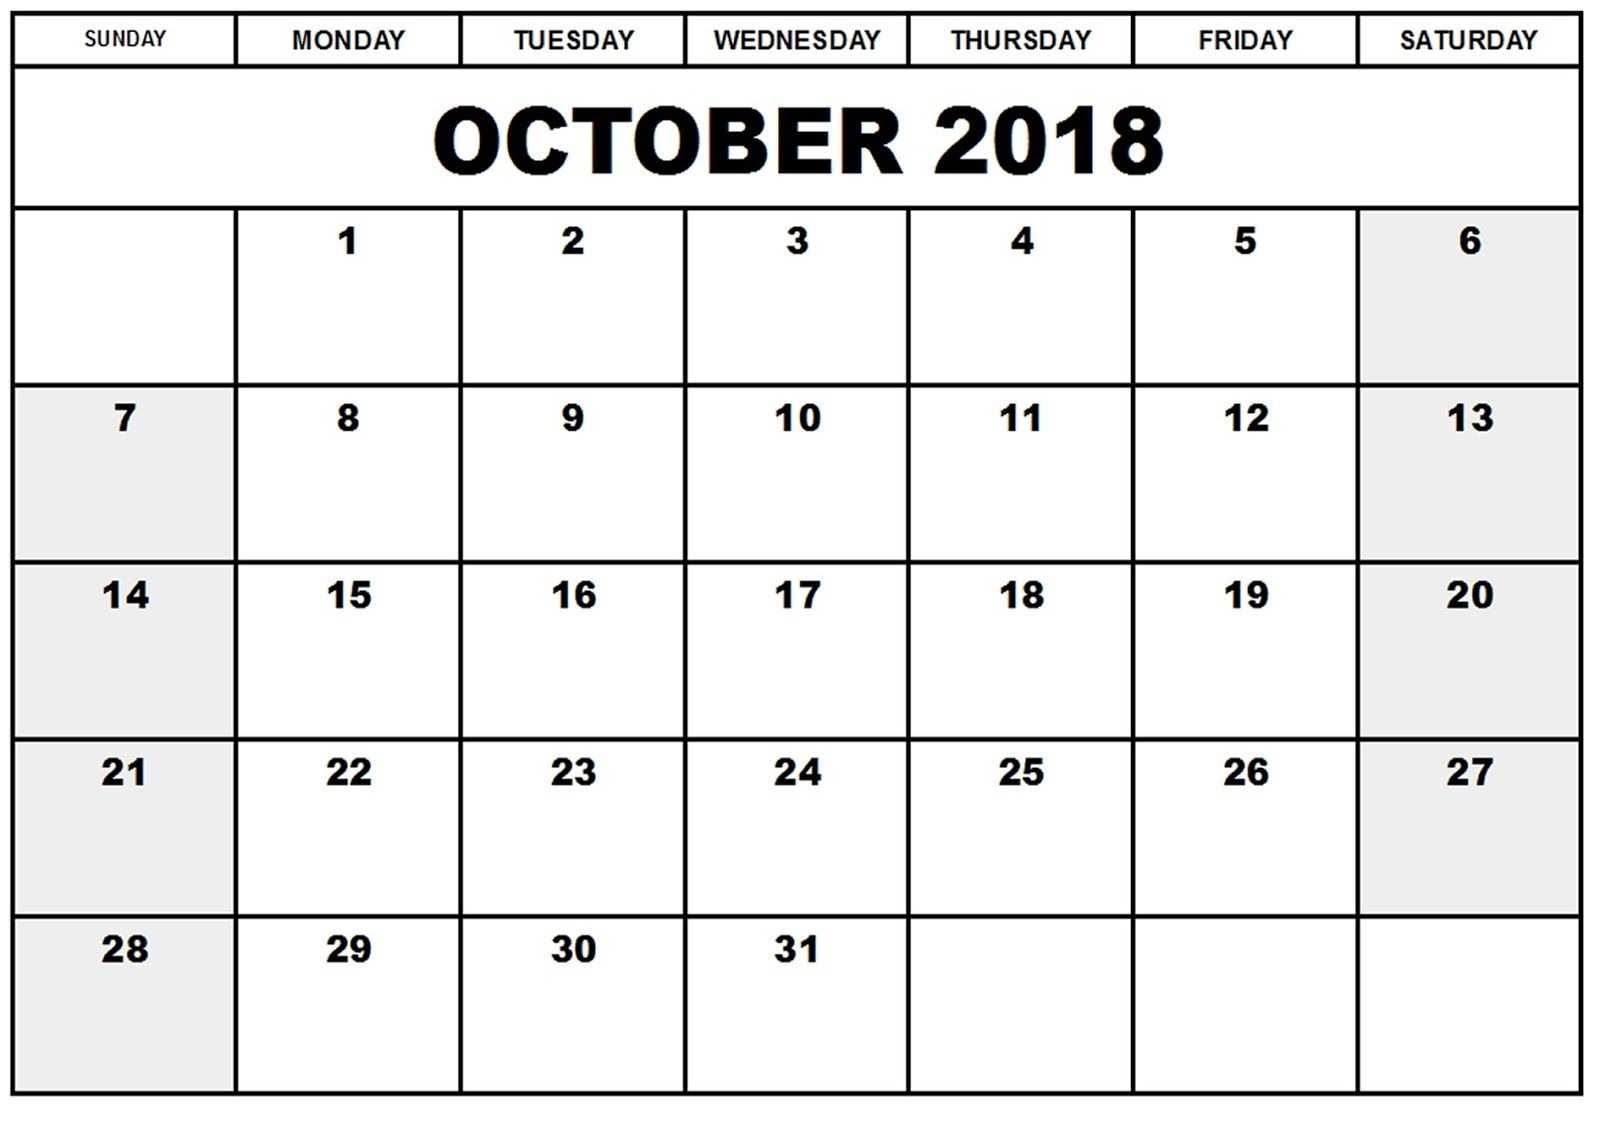 Blank October 2018 Calendar Table